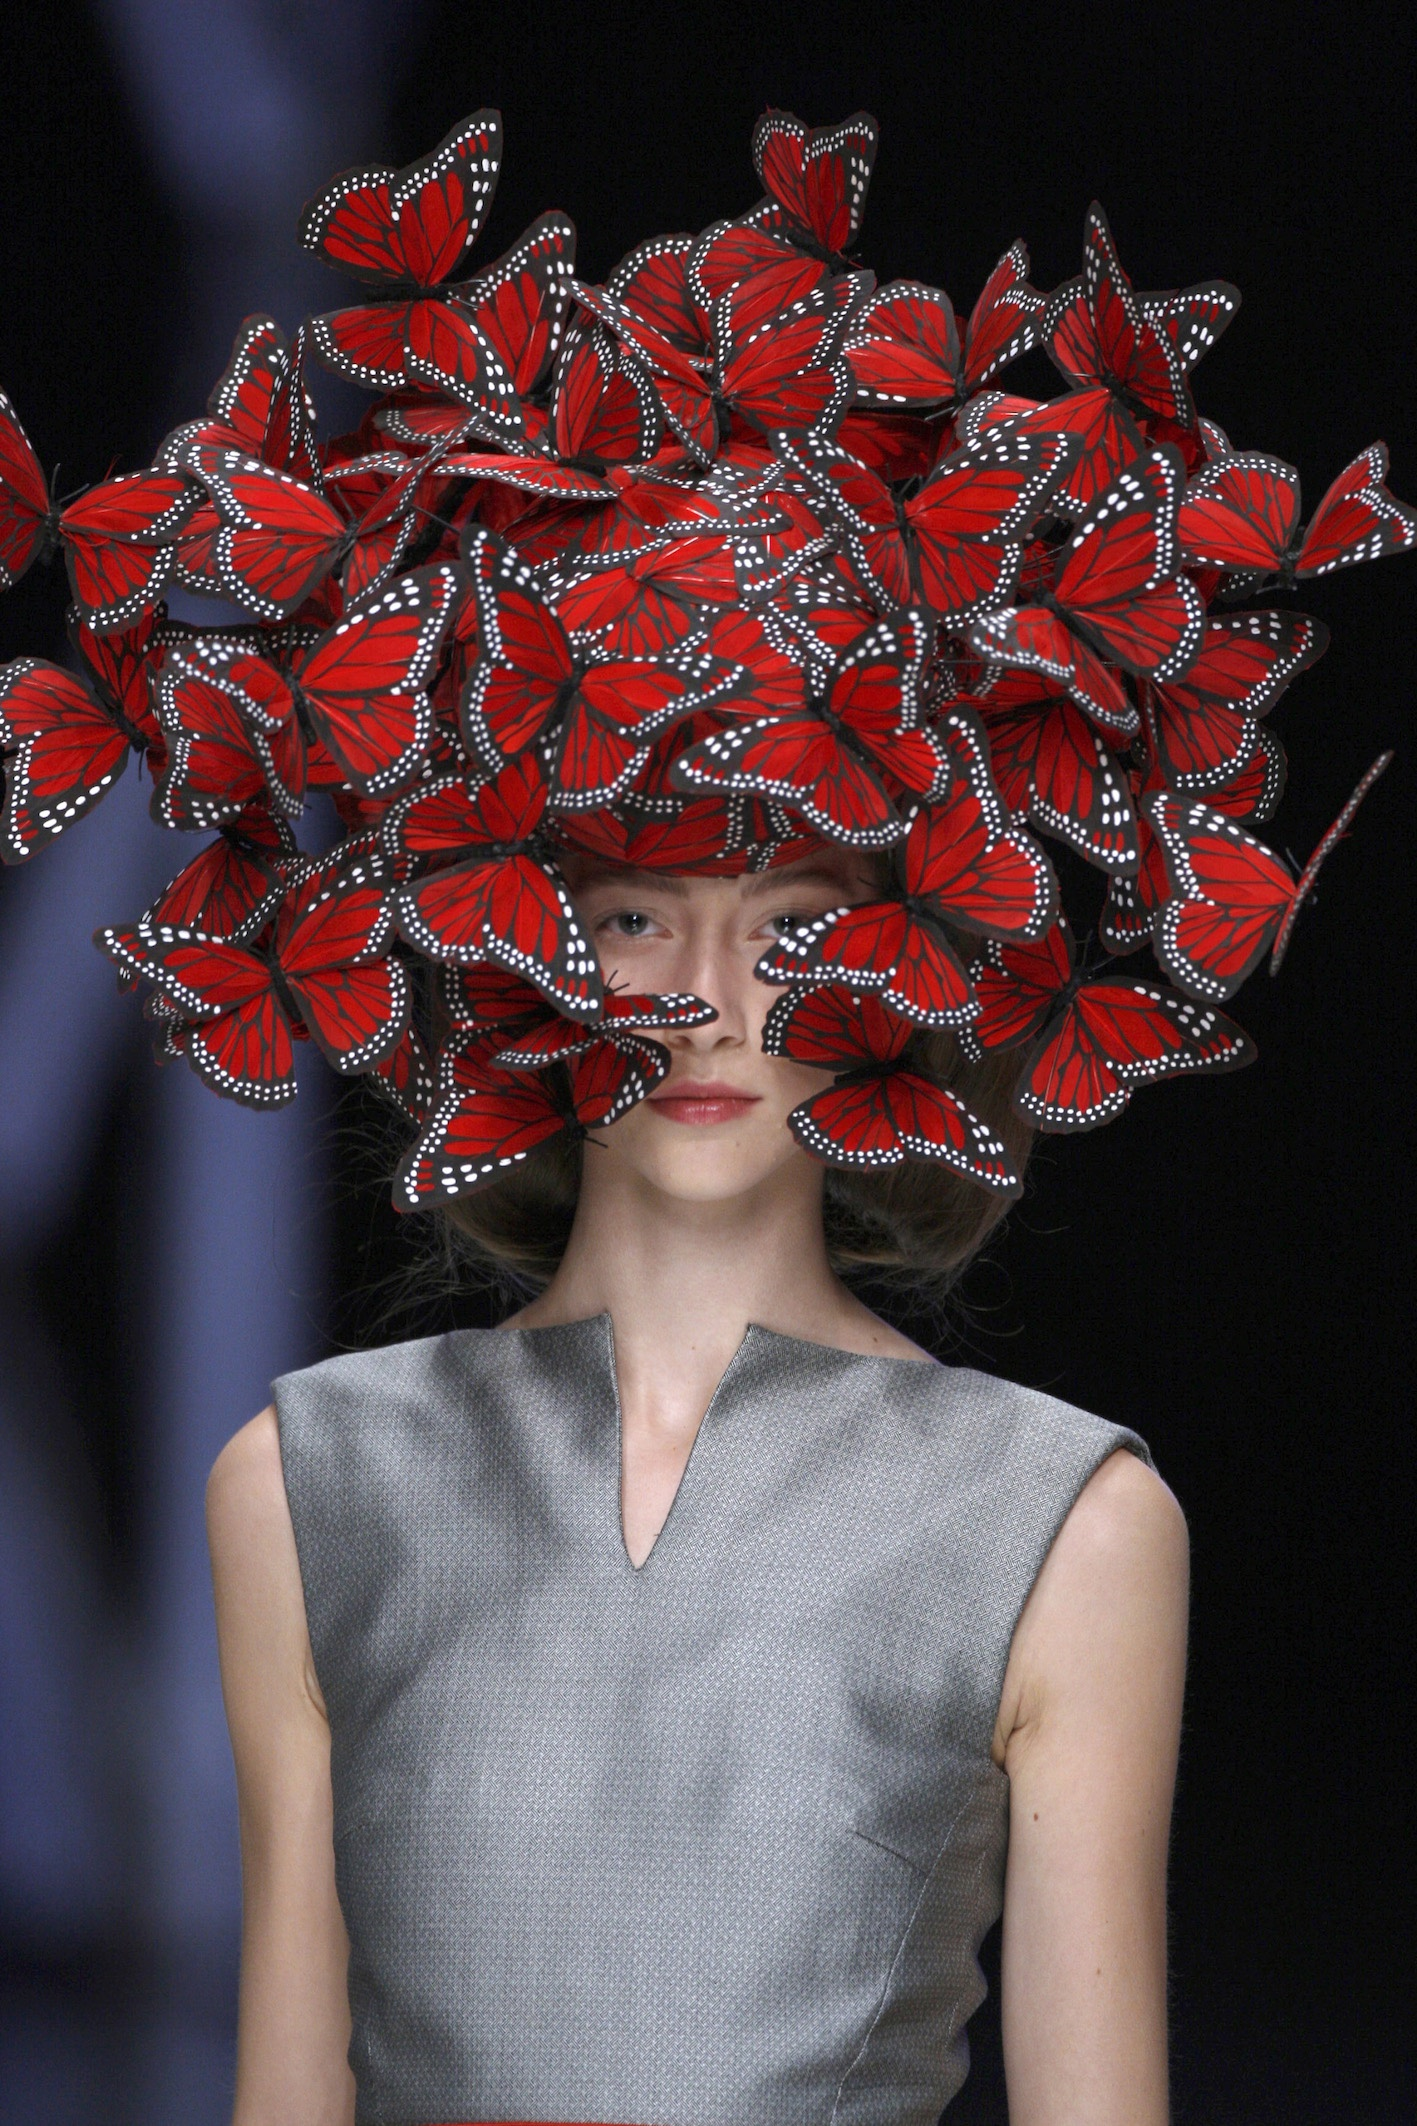 Philip Treacy per/for Alexander McQueen. La Dame Bleue, S/S 2008. Photo: © Anthea Simms.